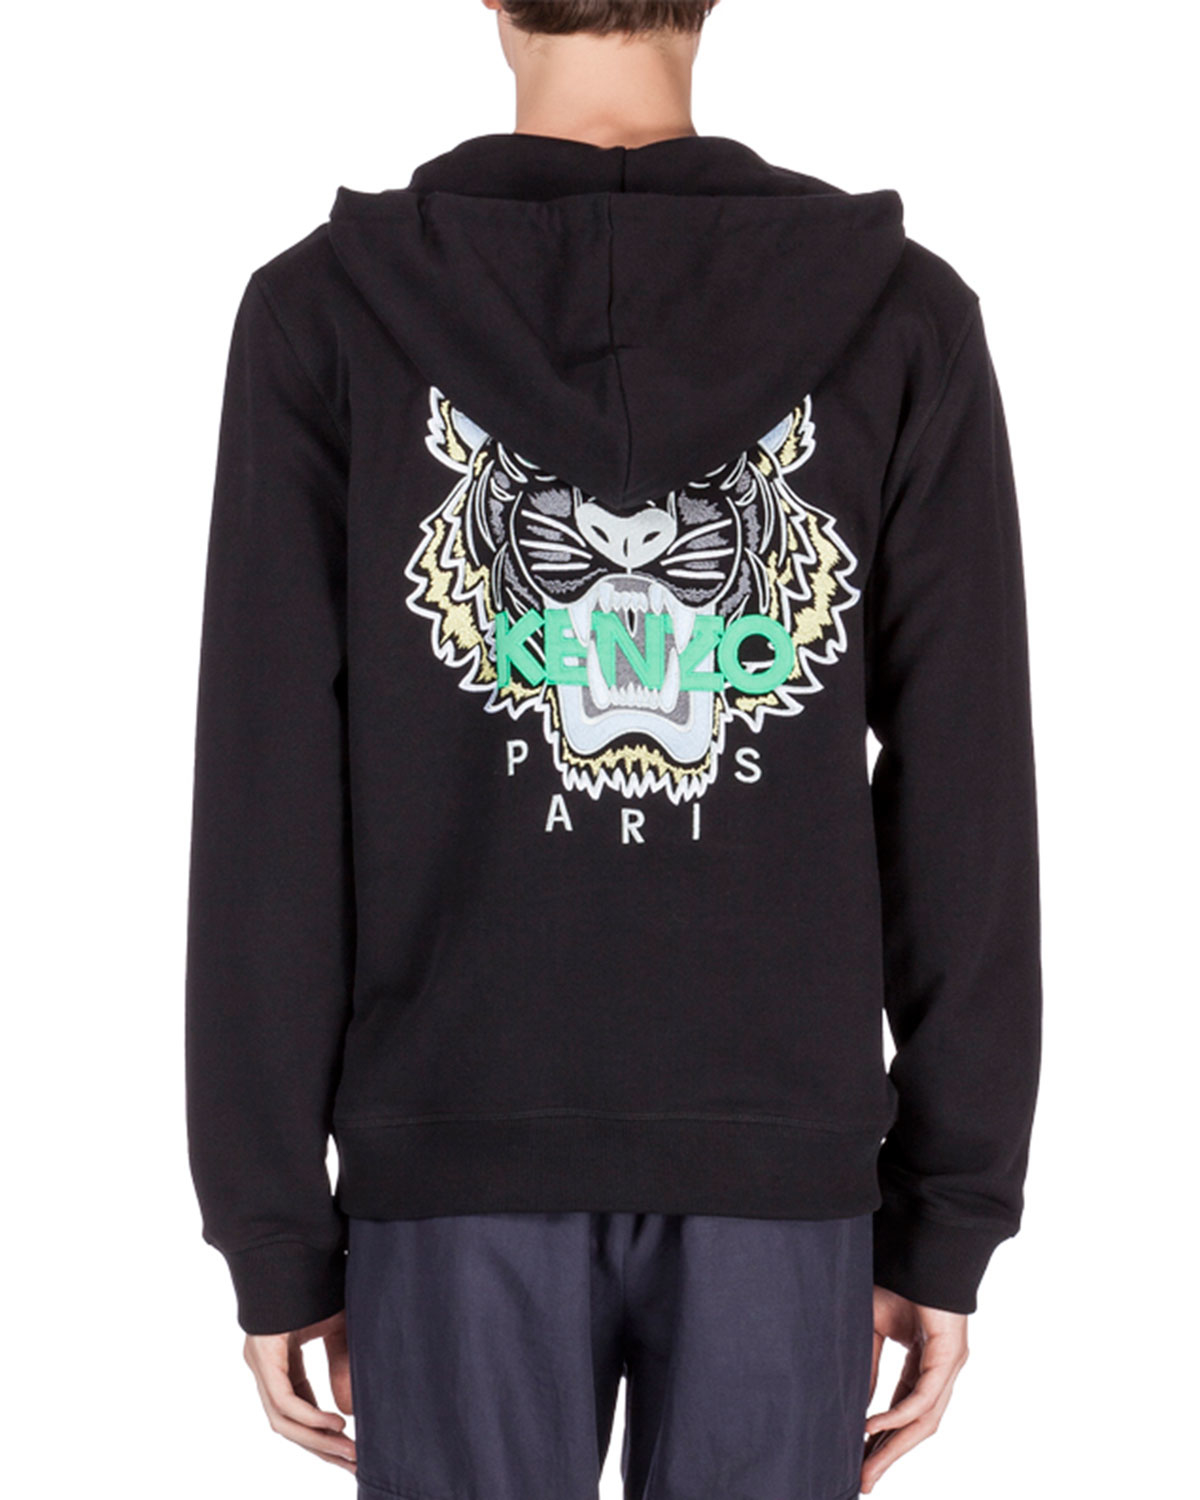 4622f58a KENZO Zip-up Hoodie With Embroidered Tiger Icon in Black for Men - Lyst